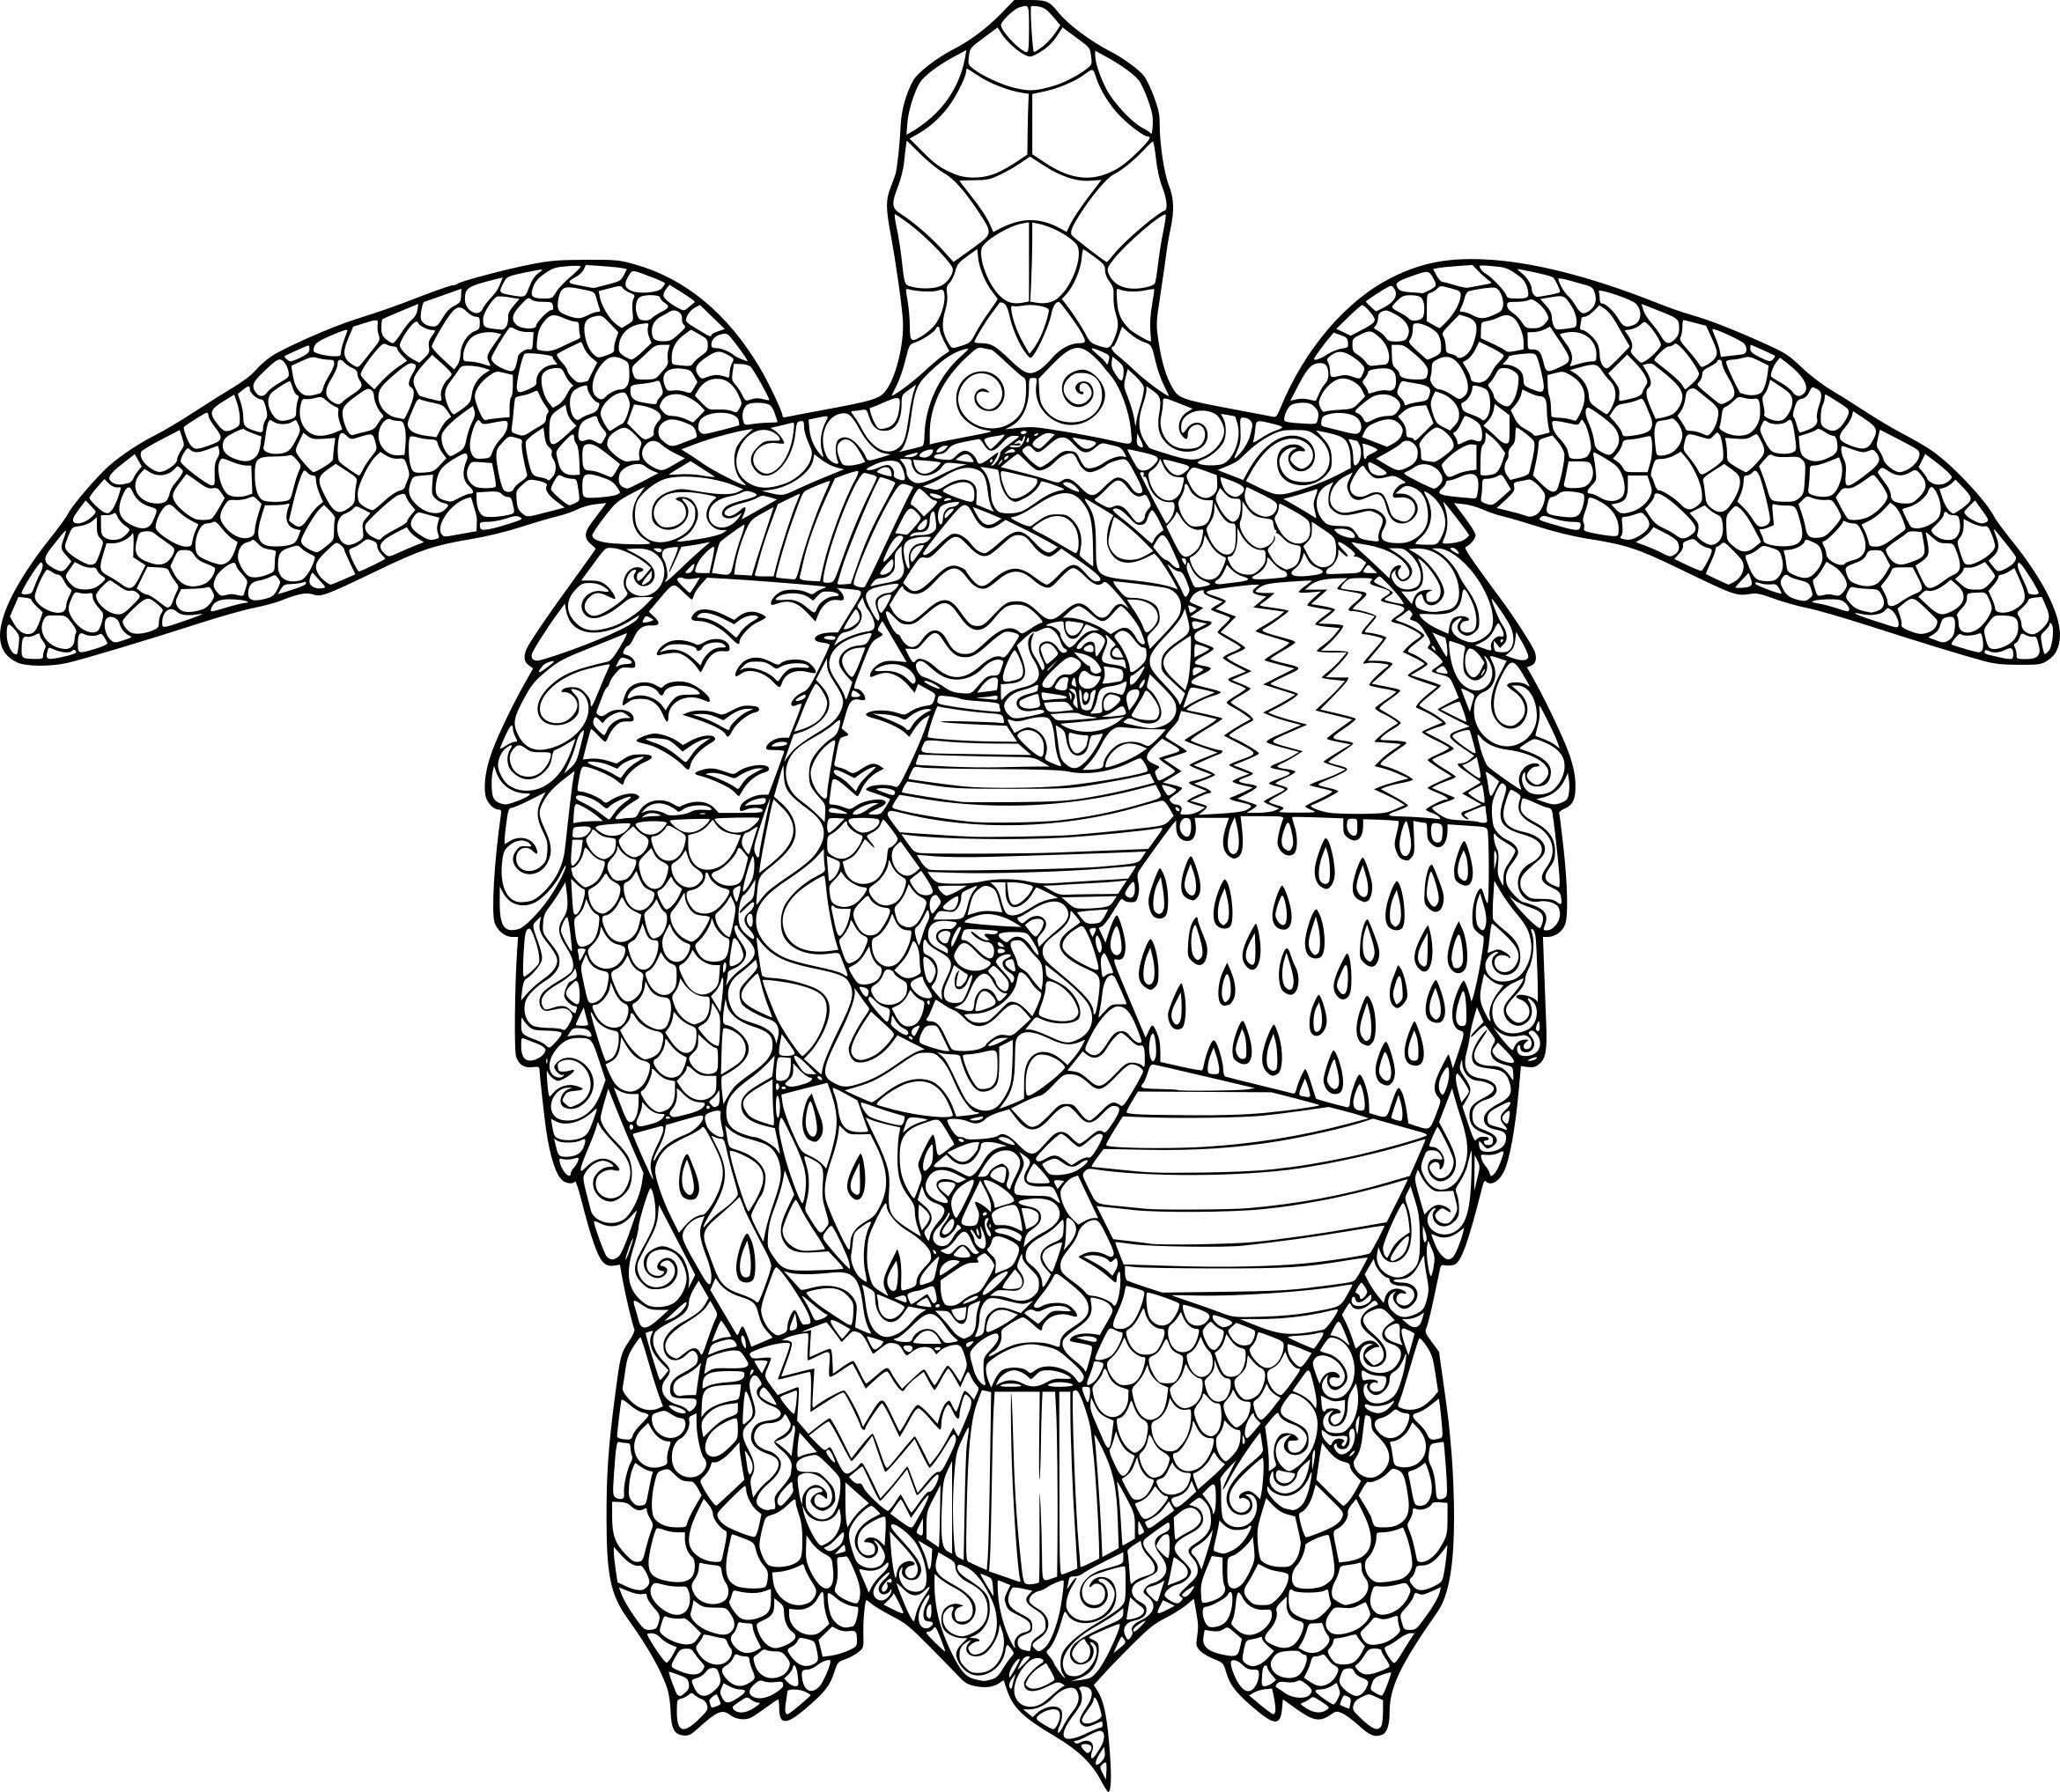 Coloriage anti stress tortue imprimer sur coloriages info mandalas turtle coloring pages - Coloriage tortue ...